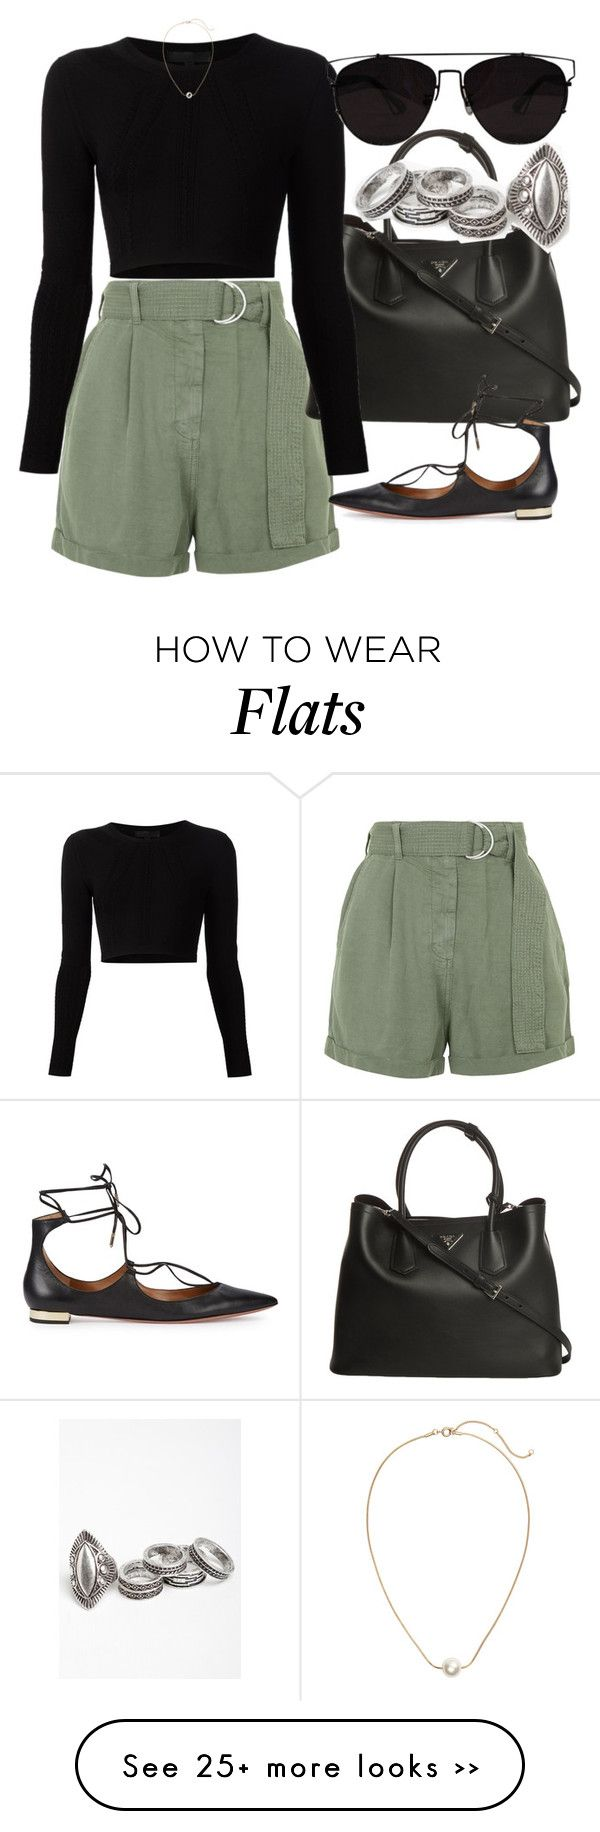 """Untitled #2789"" by glitter-the-world on Polyvore featuring Topshop, Prada, Cushnie Et Ochs, Aquazzura and H&M"